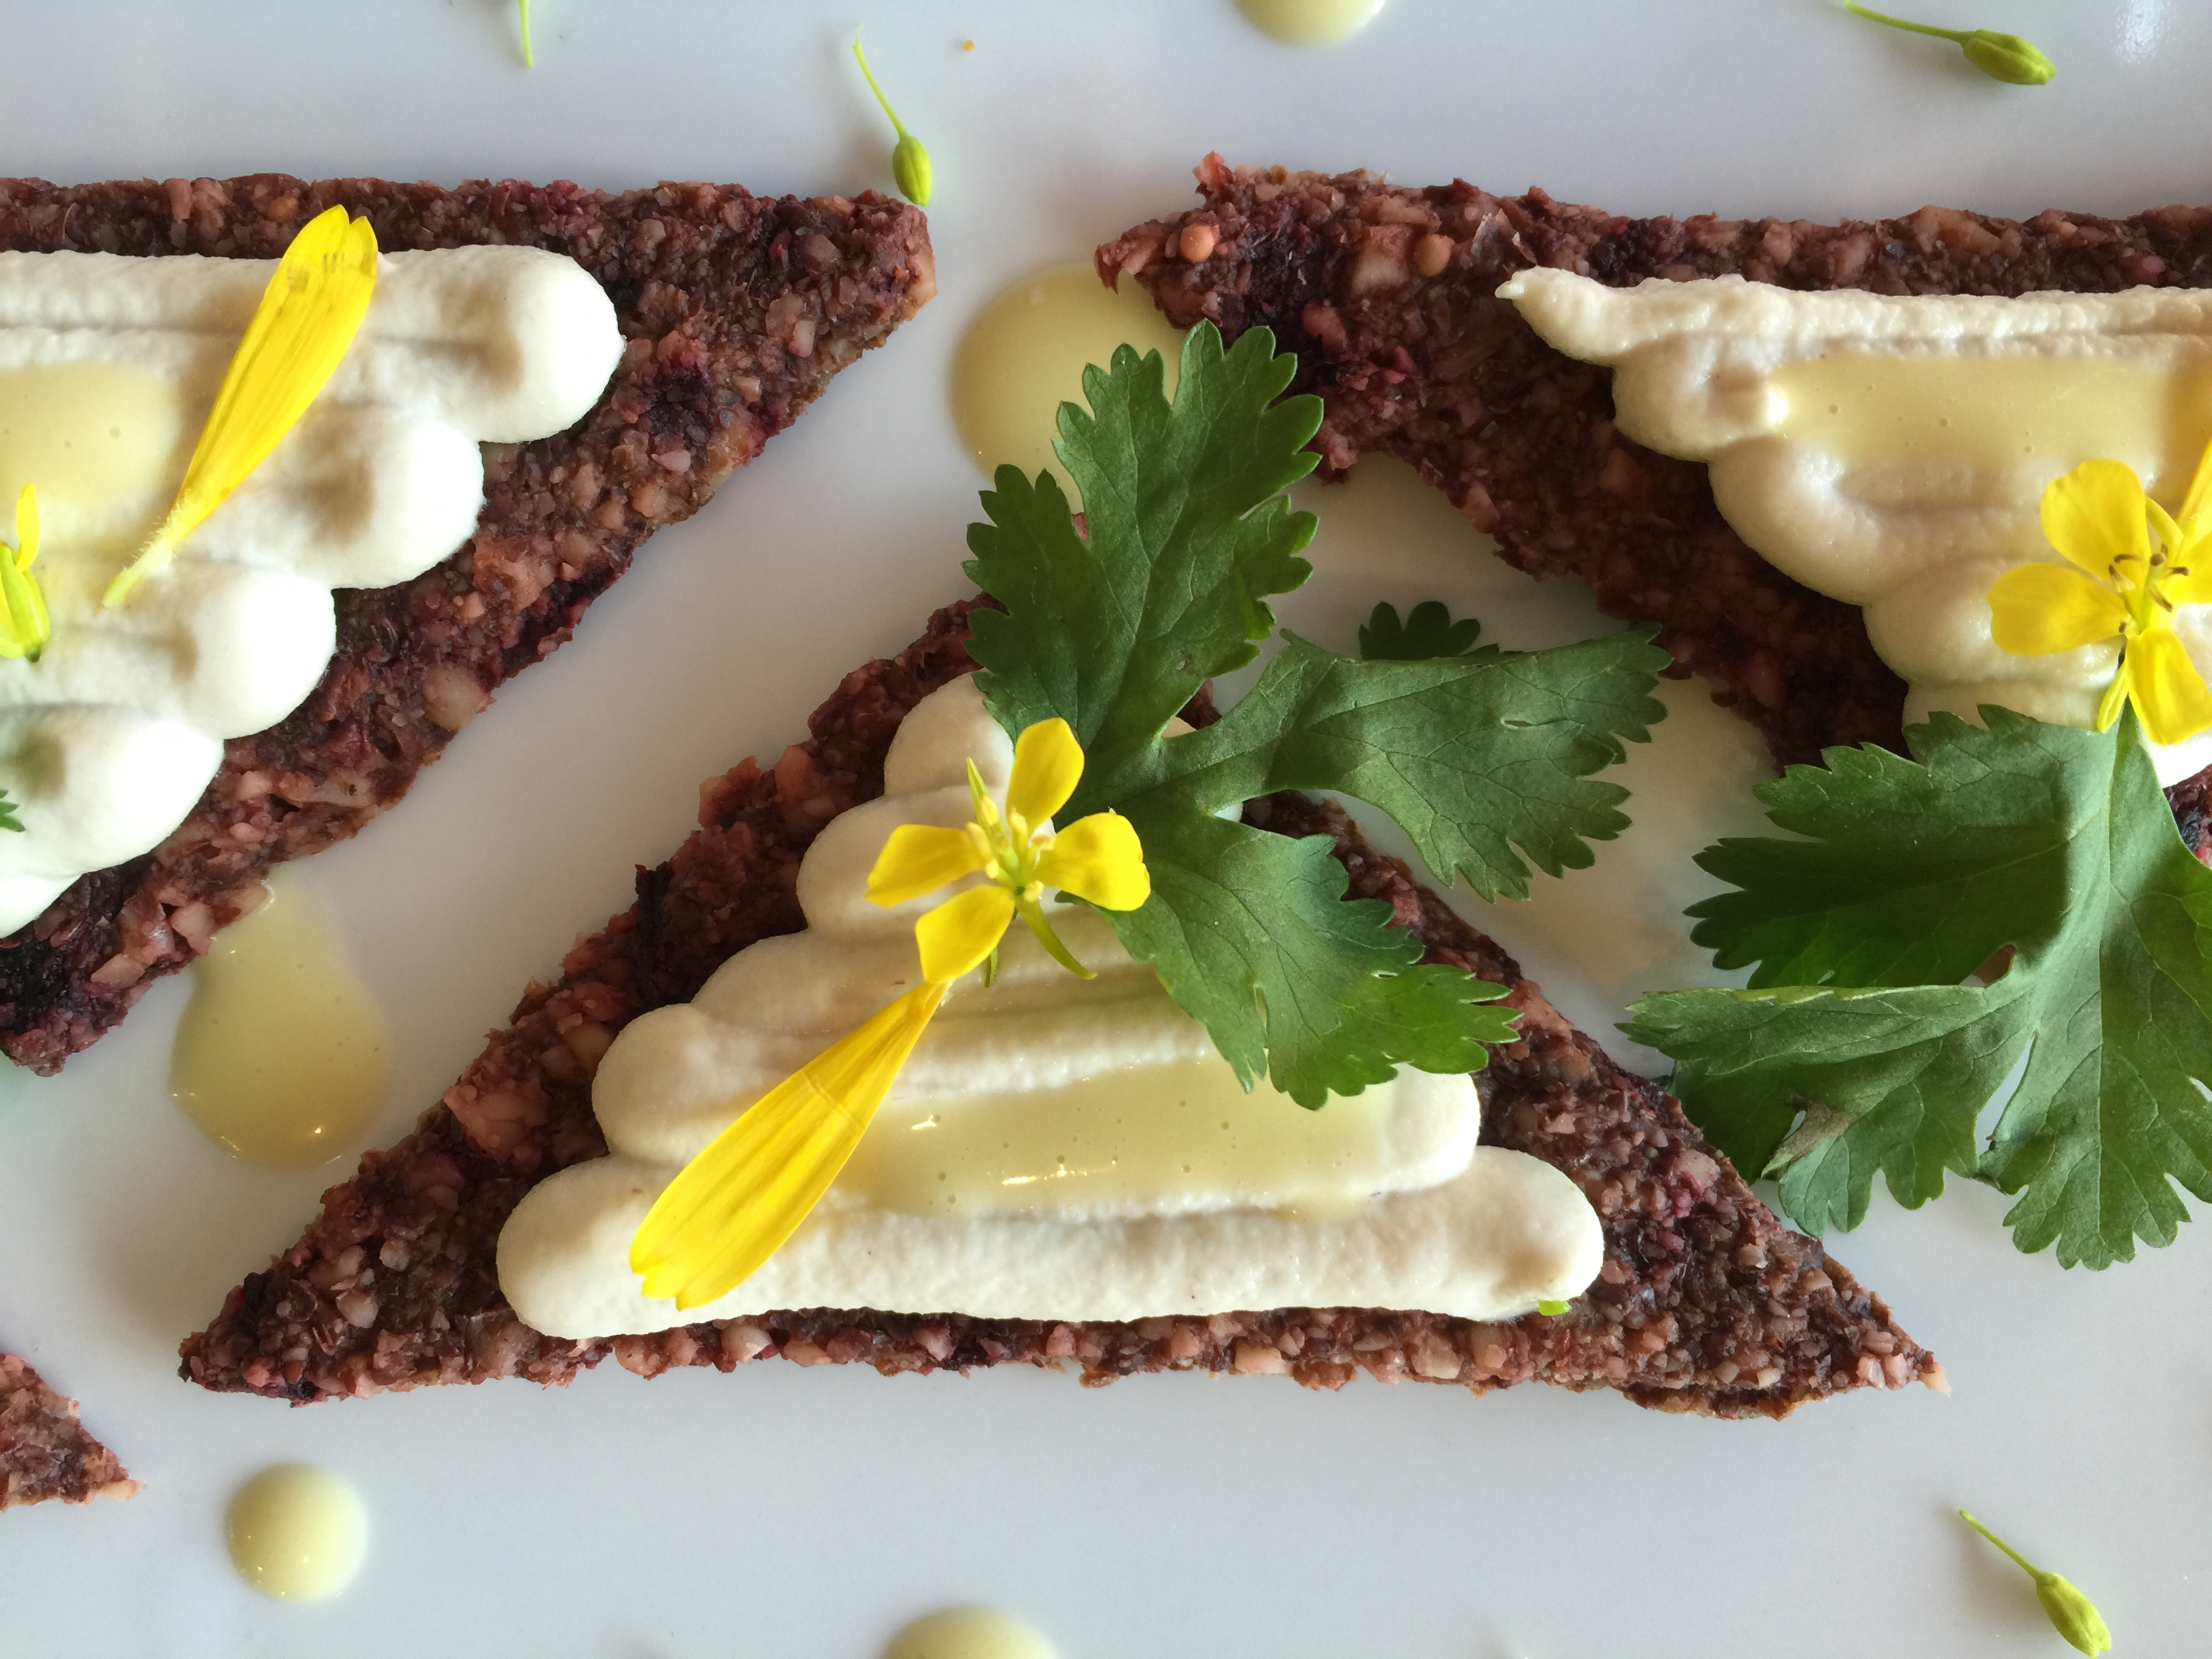 Beetroot crackers and horseradish